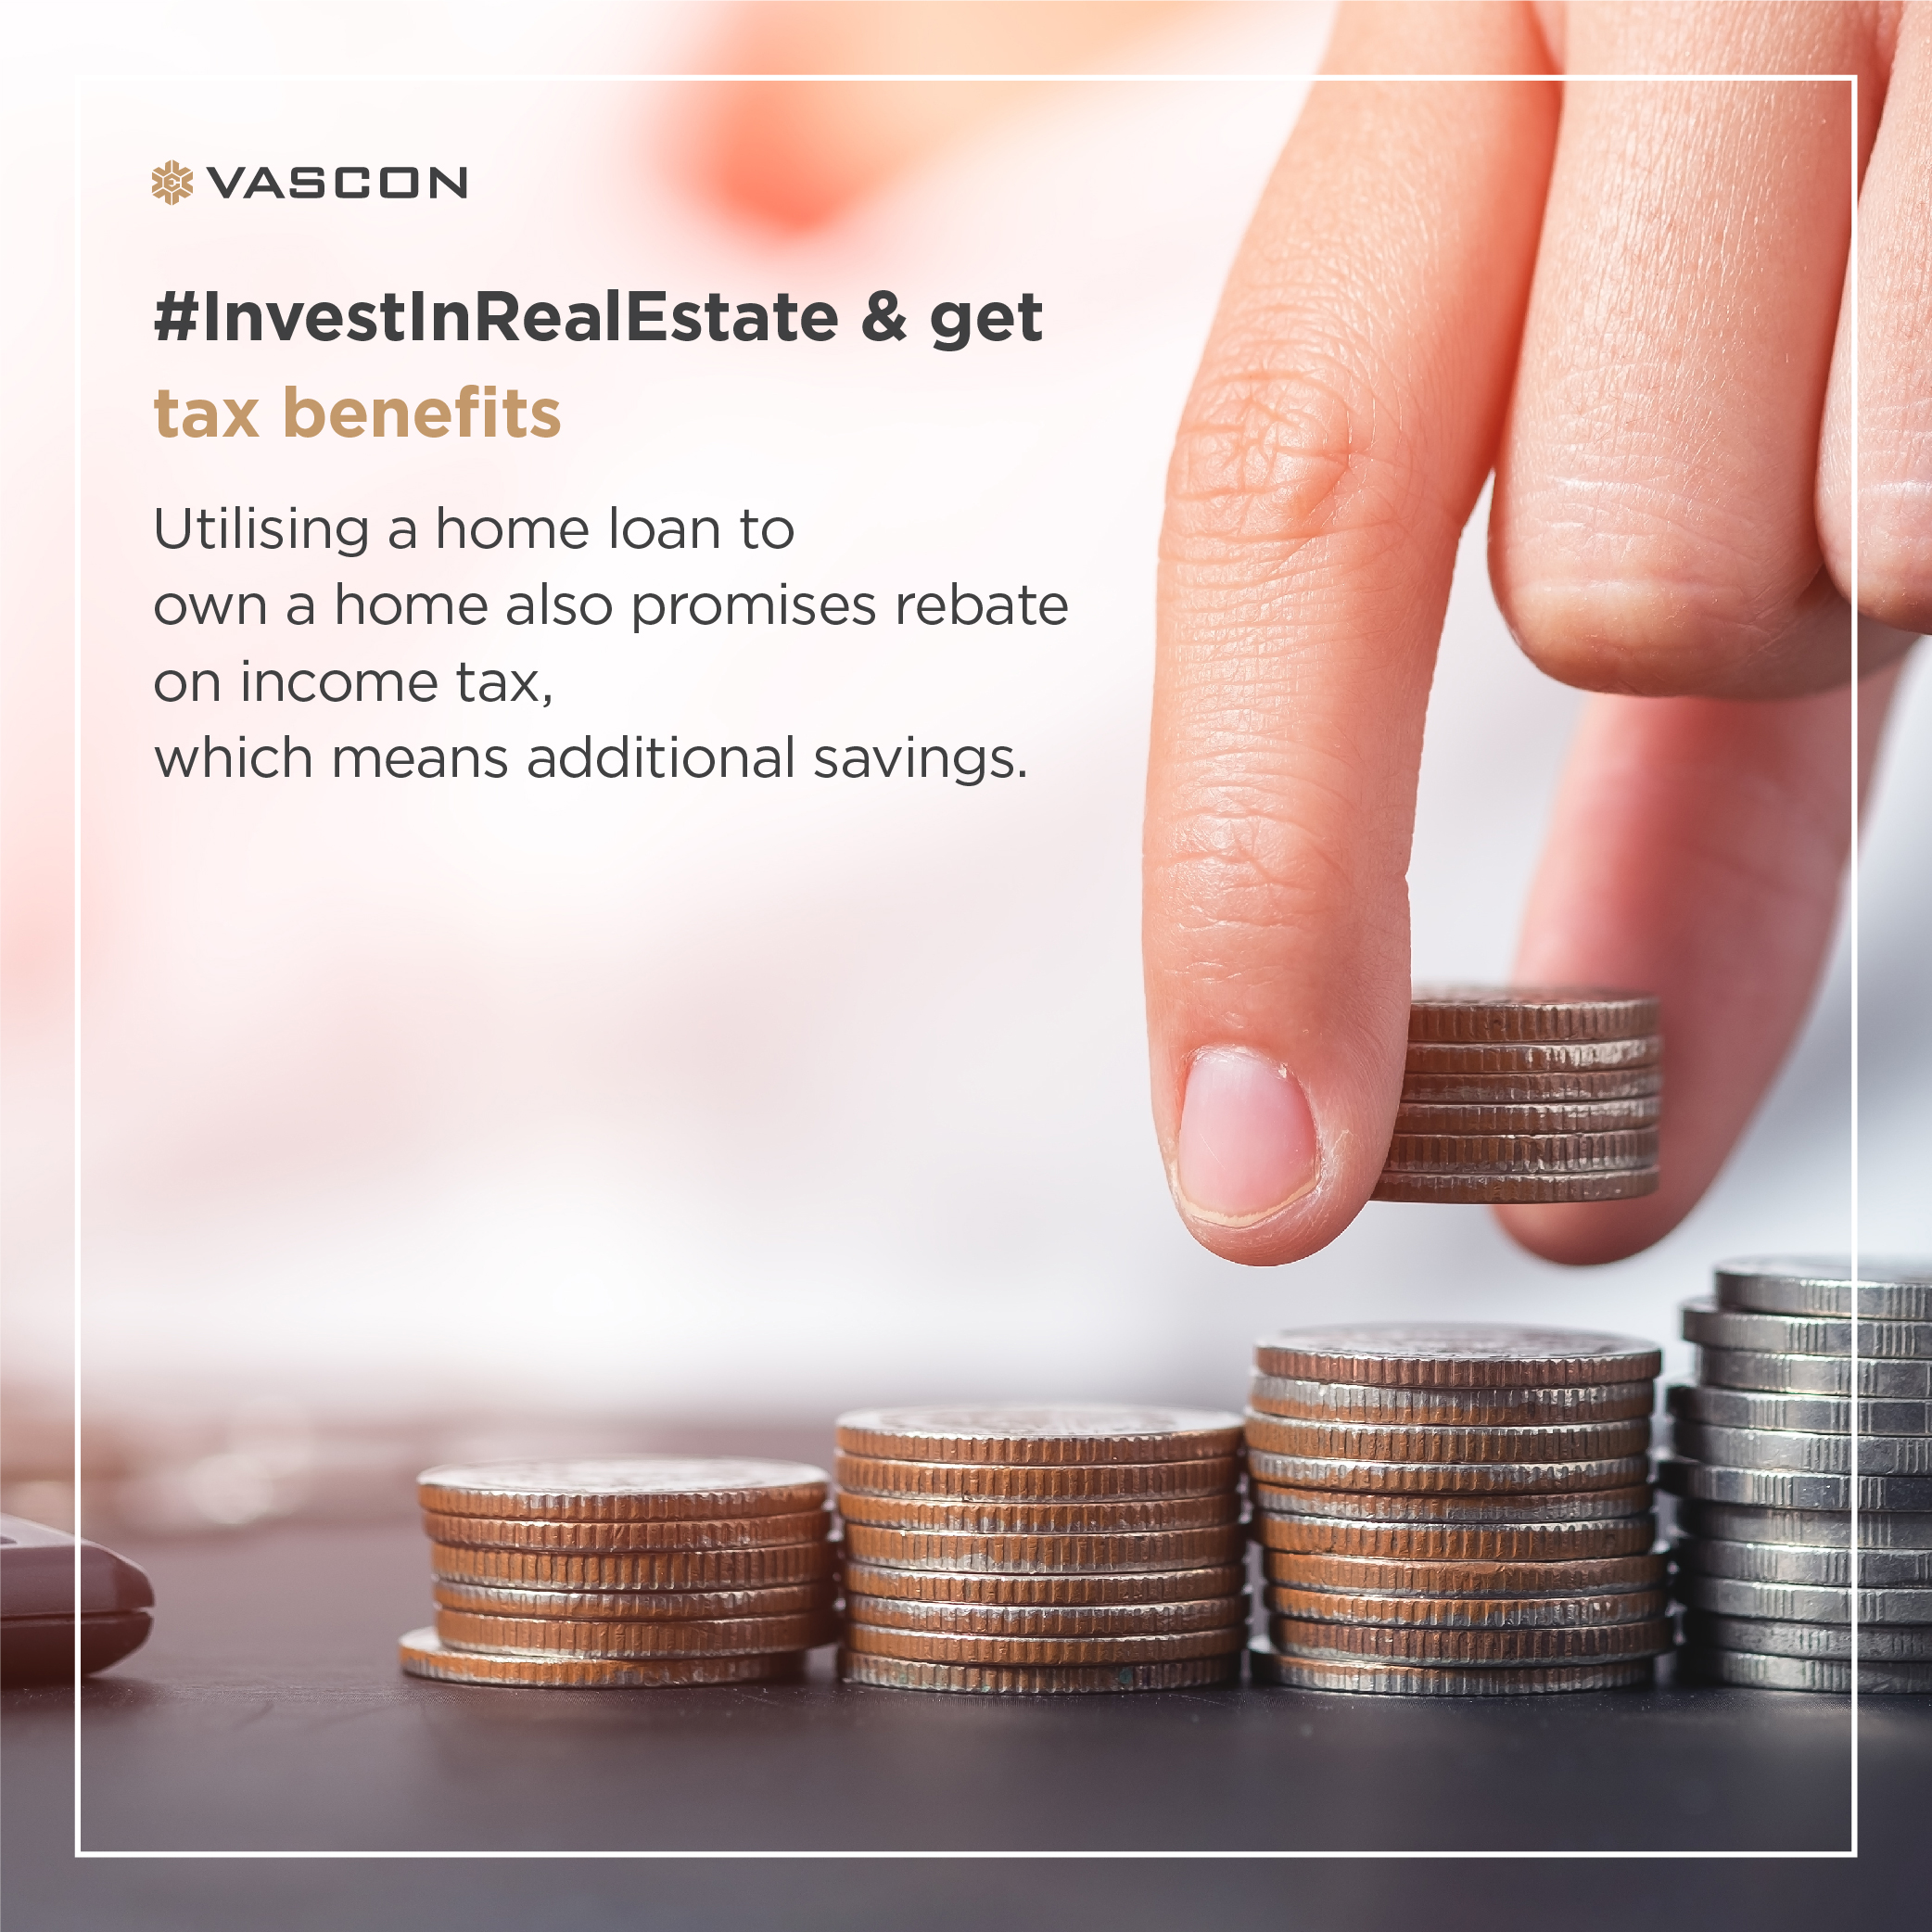 tax benefits on real estate investment